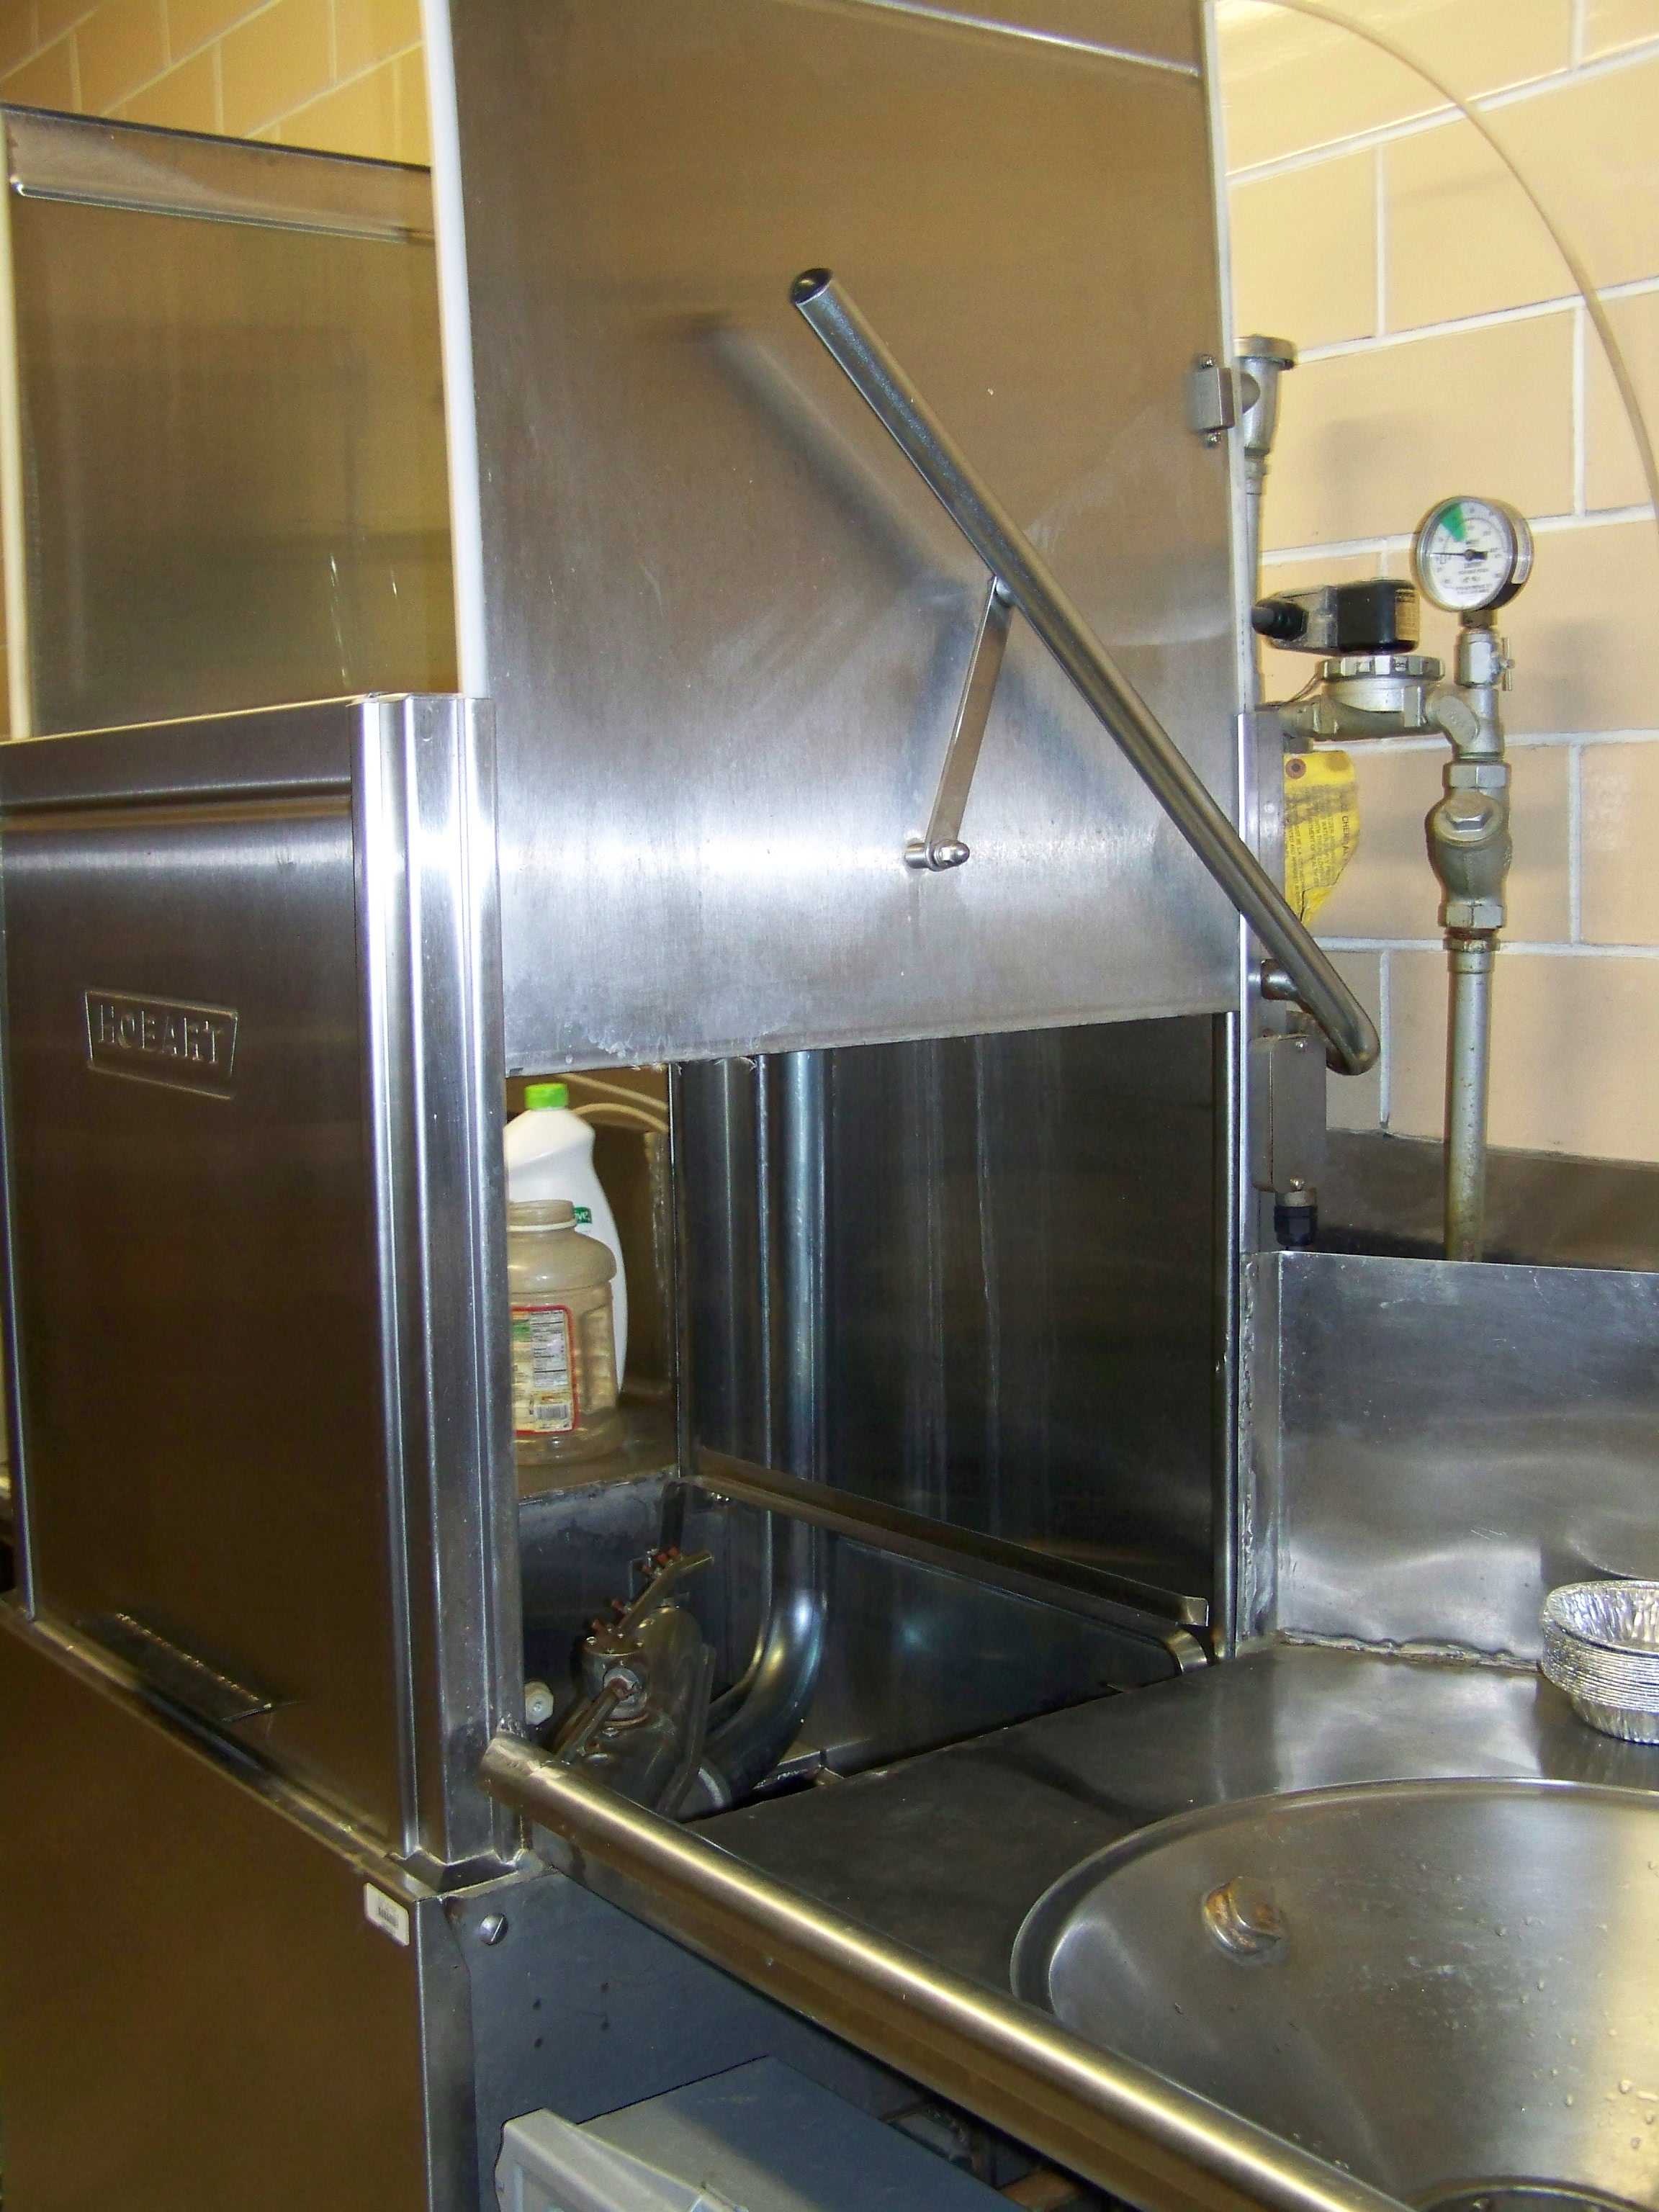 Hobart industrial dishwashers are not for Everyone | Crystal